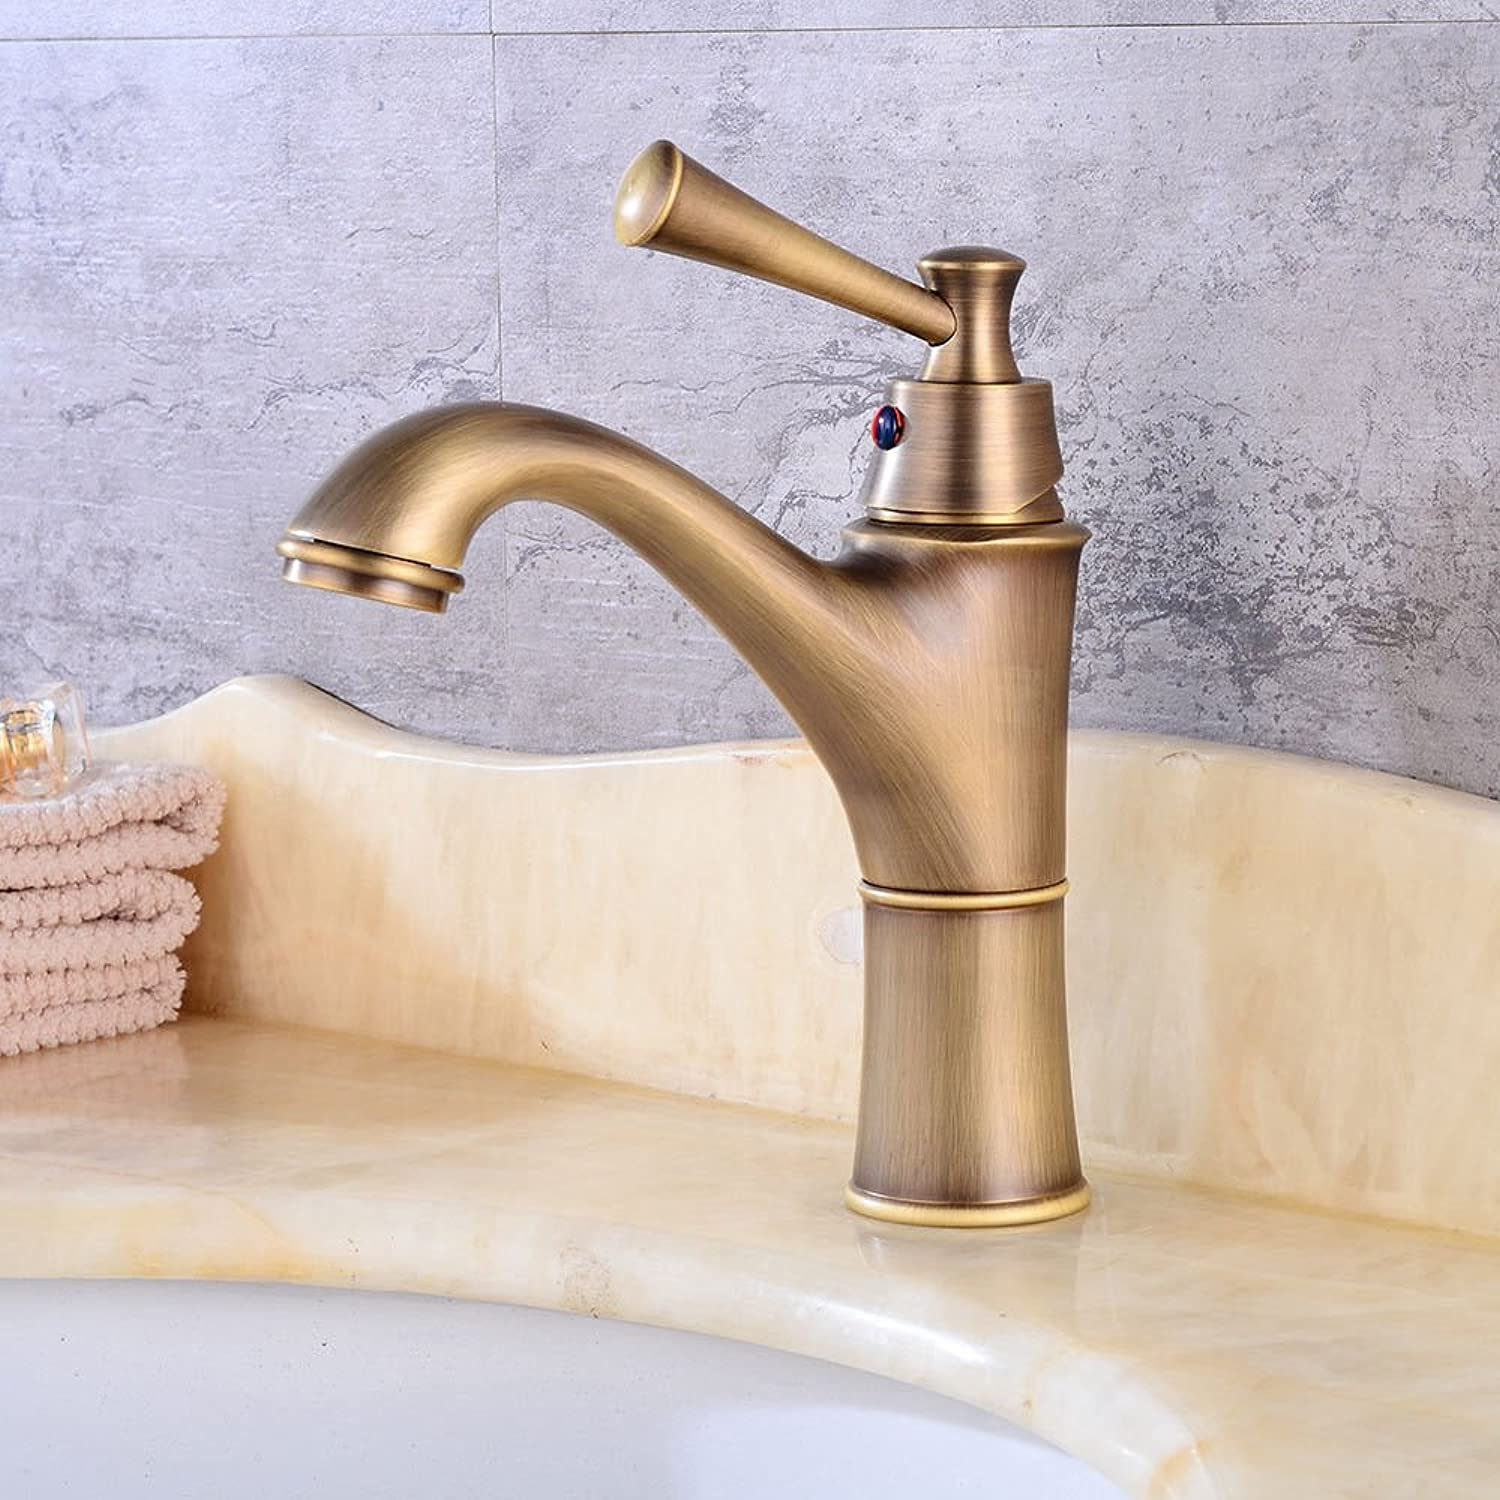 AQMMi Basin Sink Tap Bathroom Bar Faucet Antique Hot and Cold Water Retro Bathroom Basin Sink Faucet